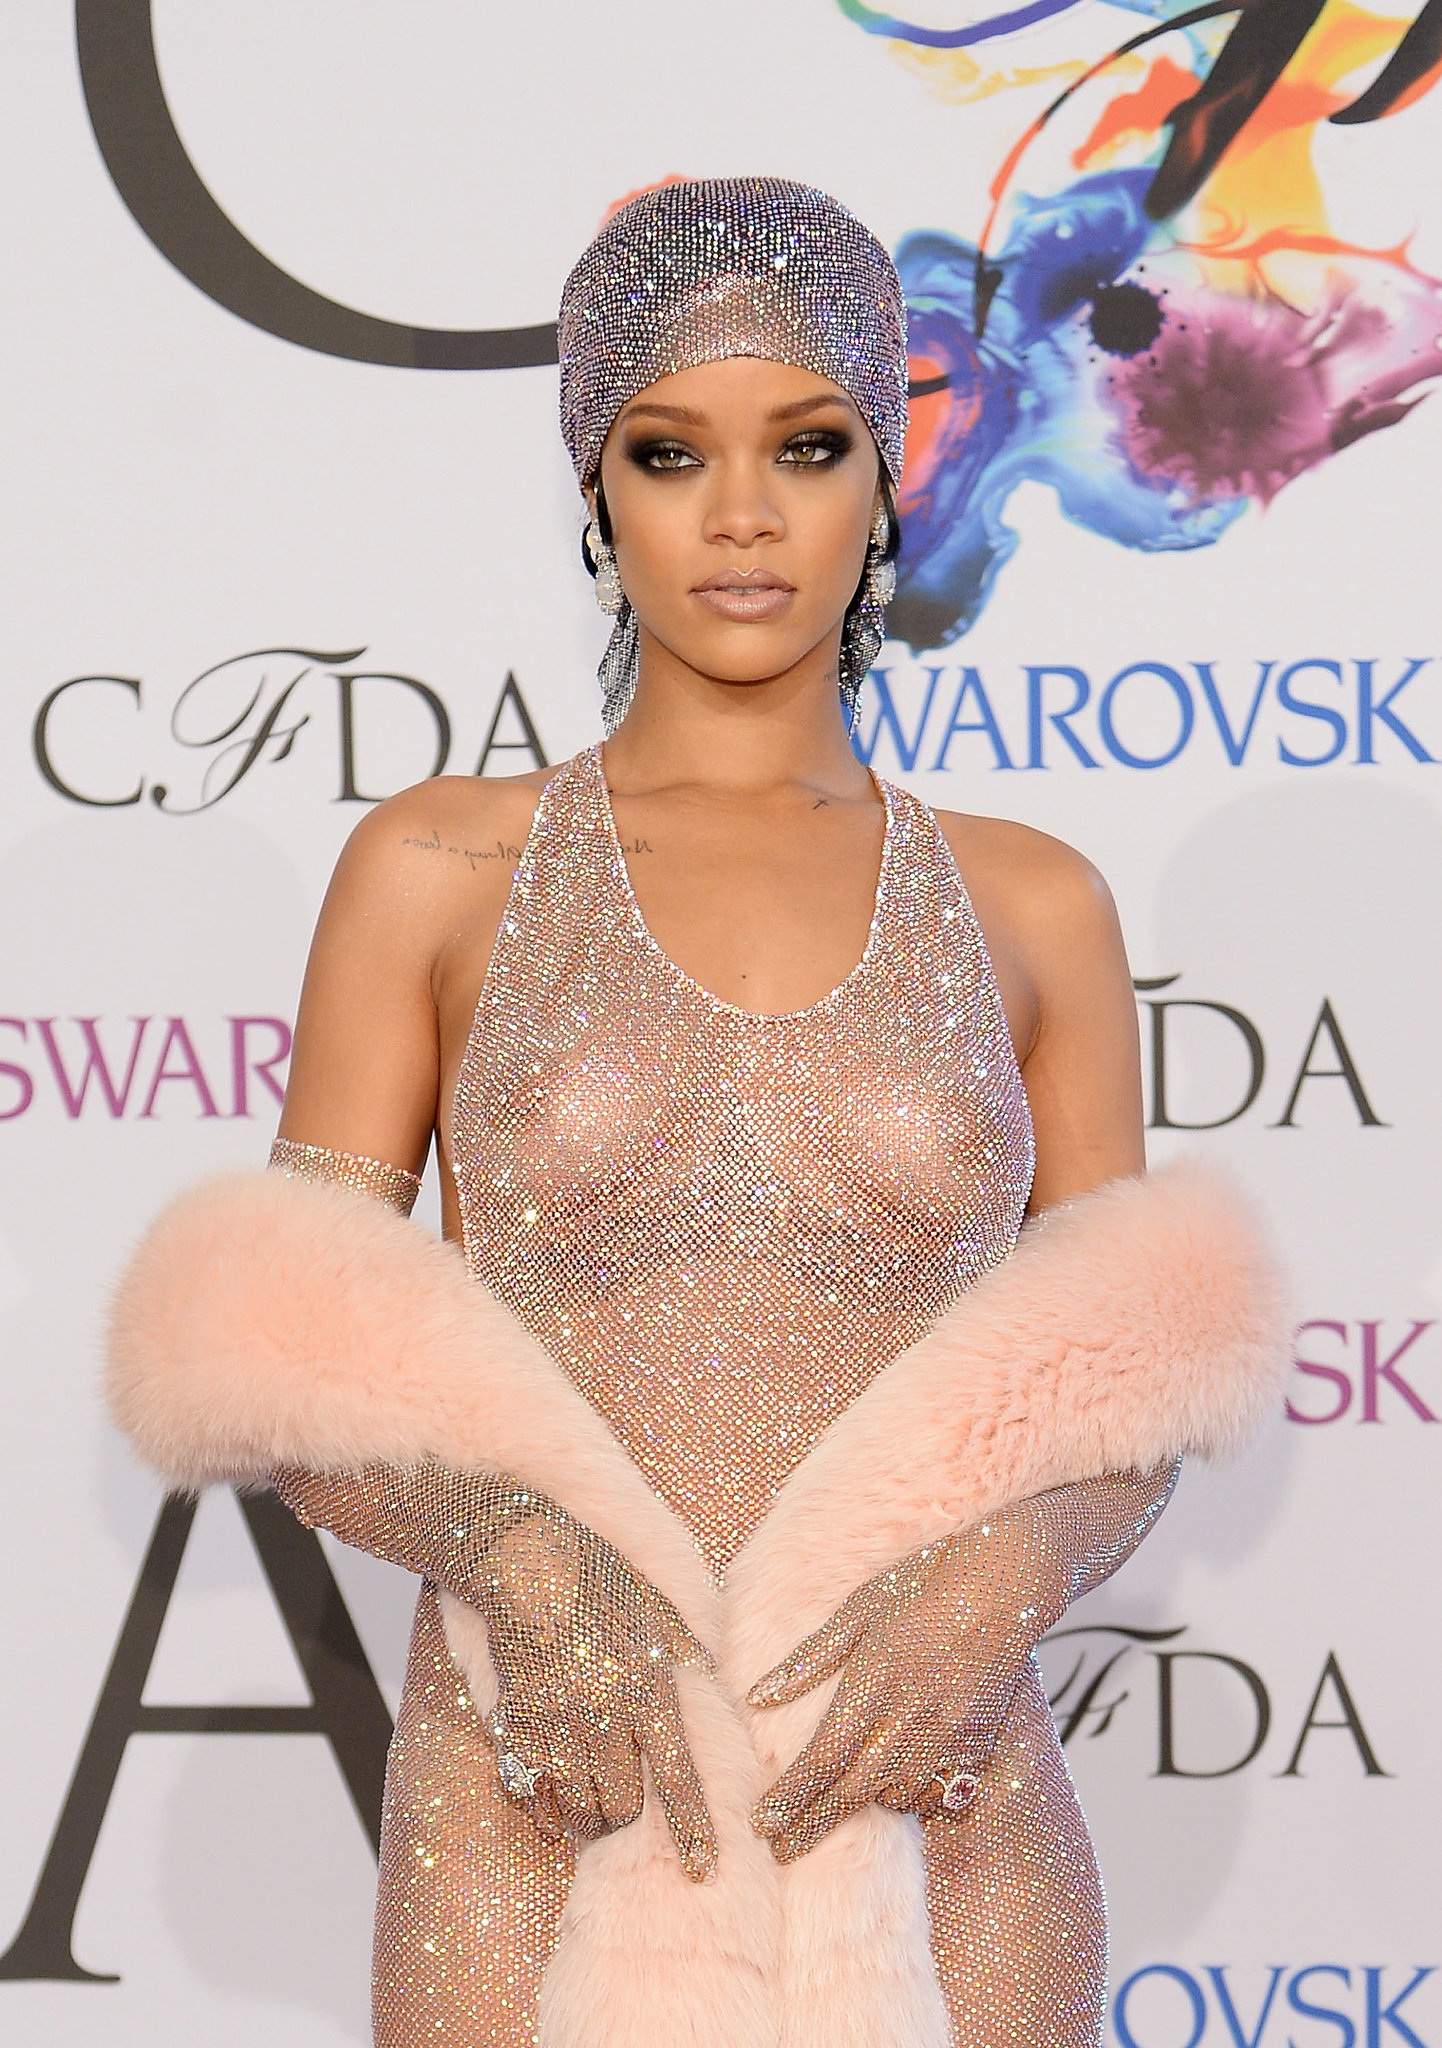 Rihanna Steals the Whole Show at the CFDA Awards